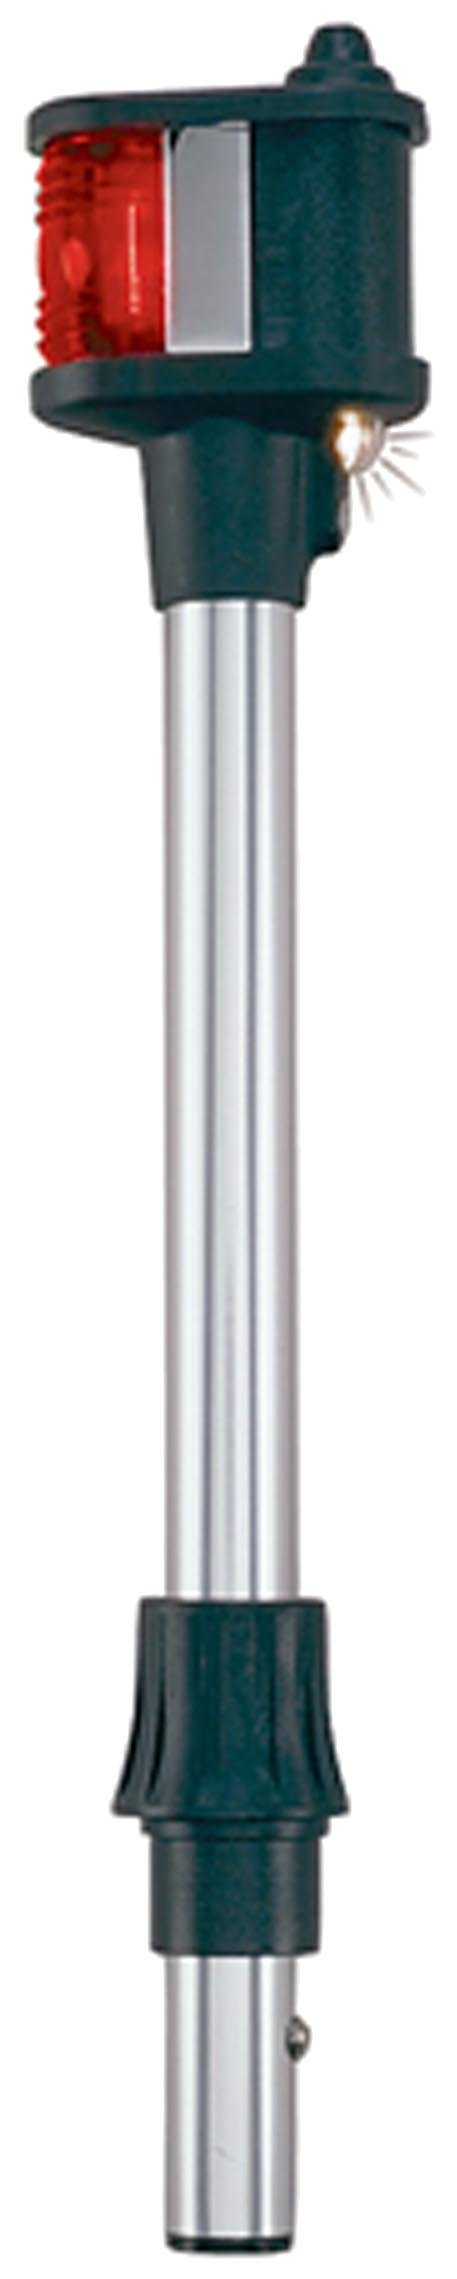 Perko 1211DP2CHR 12.5'' Chrome Removable Bi-Color Marine Pole and Utility Light with Pole by Perko